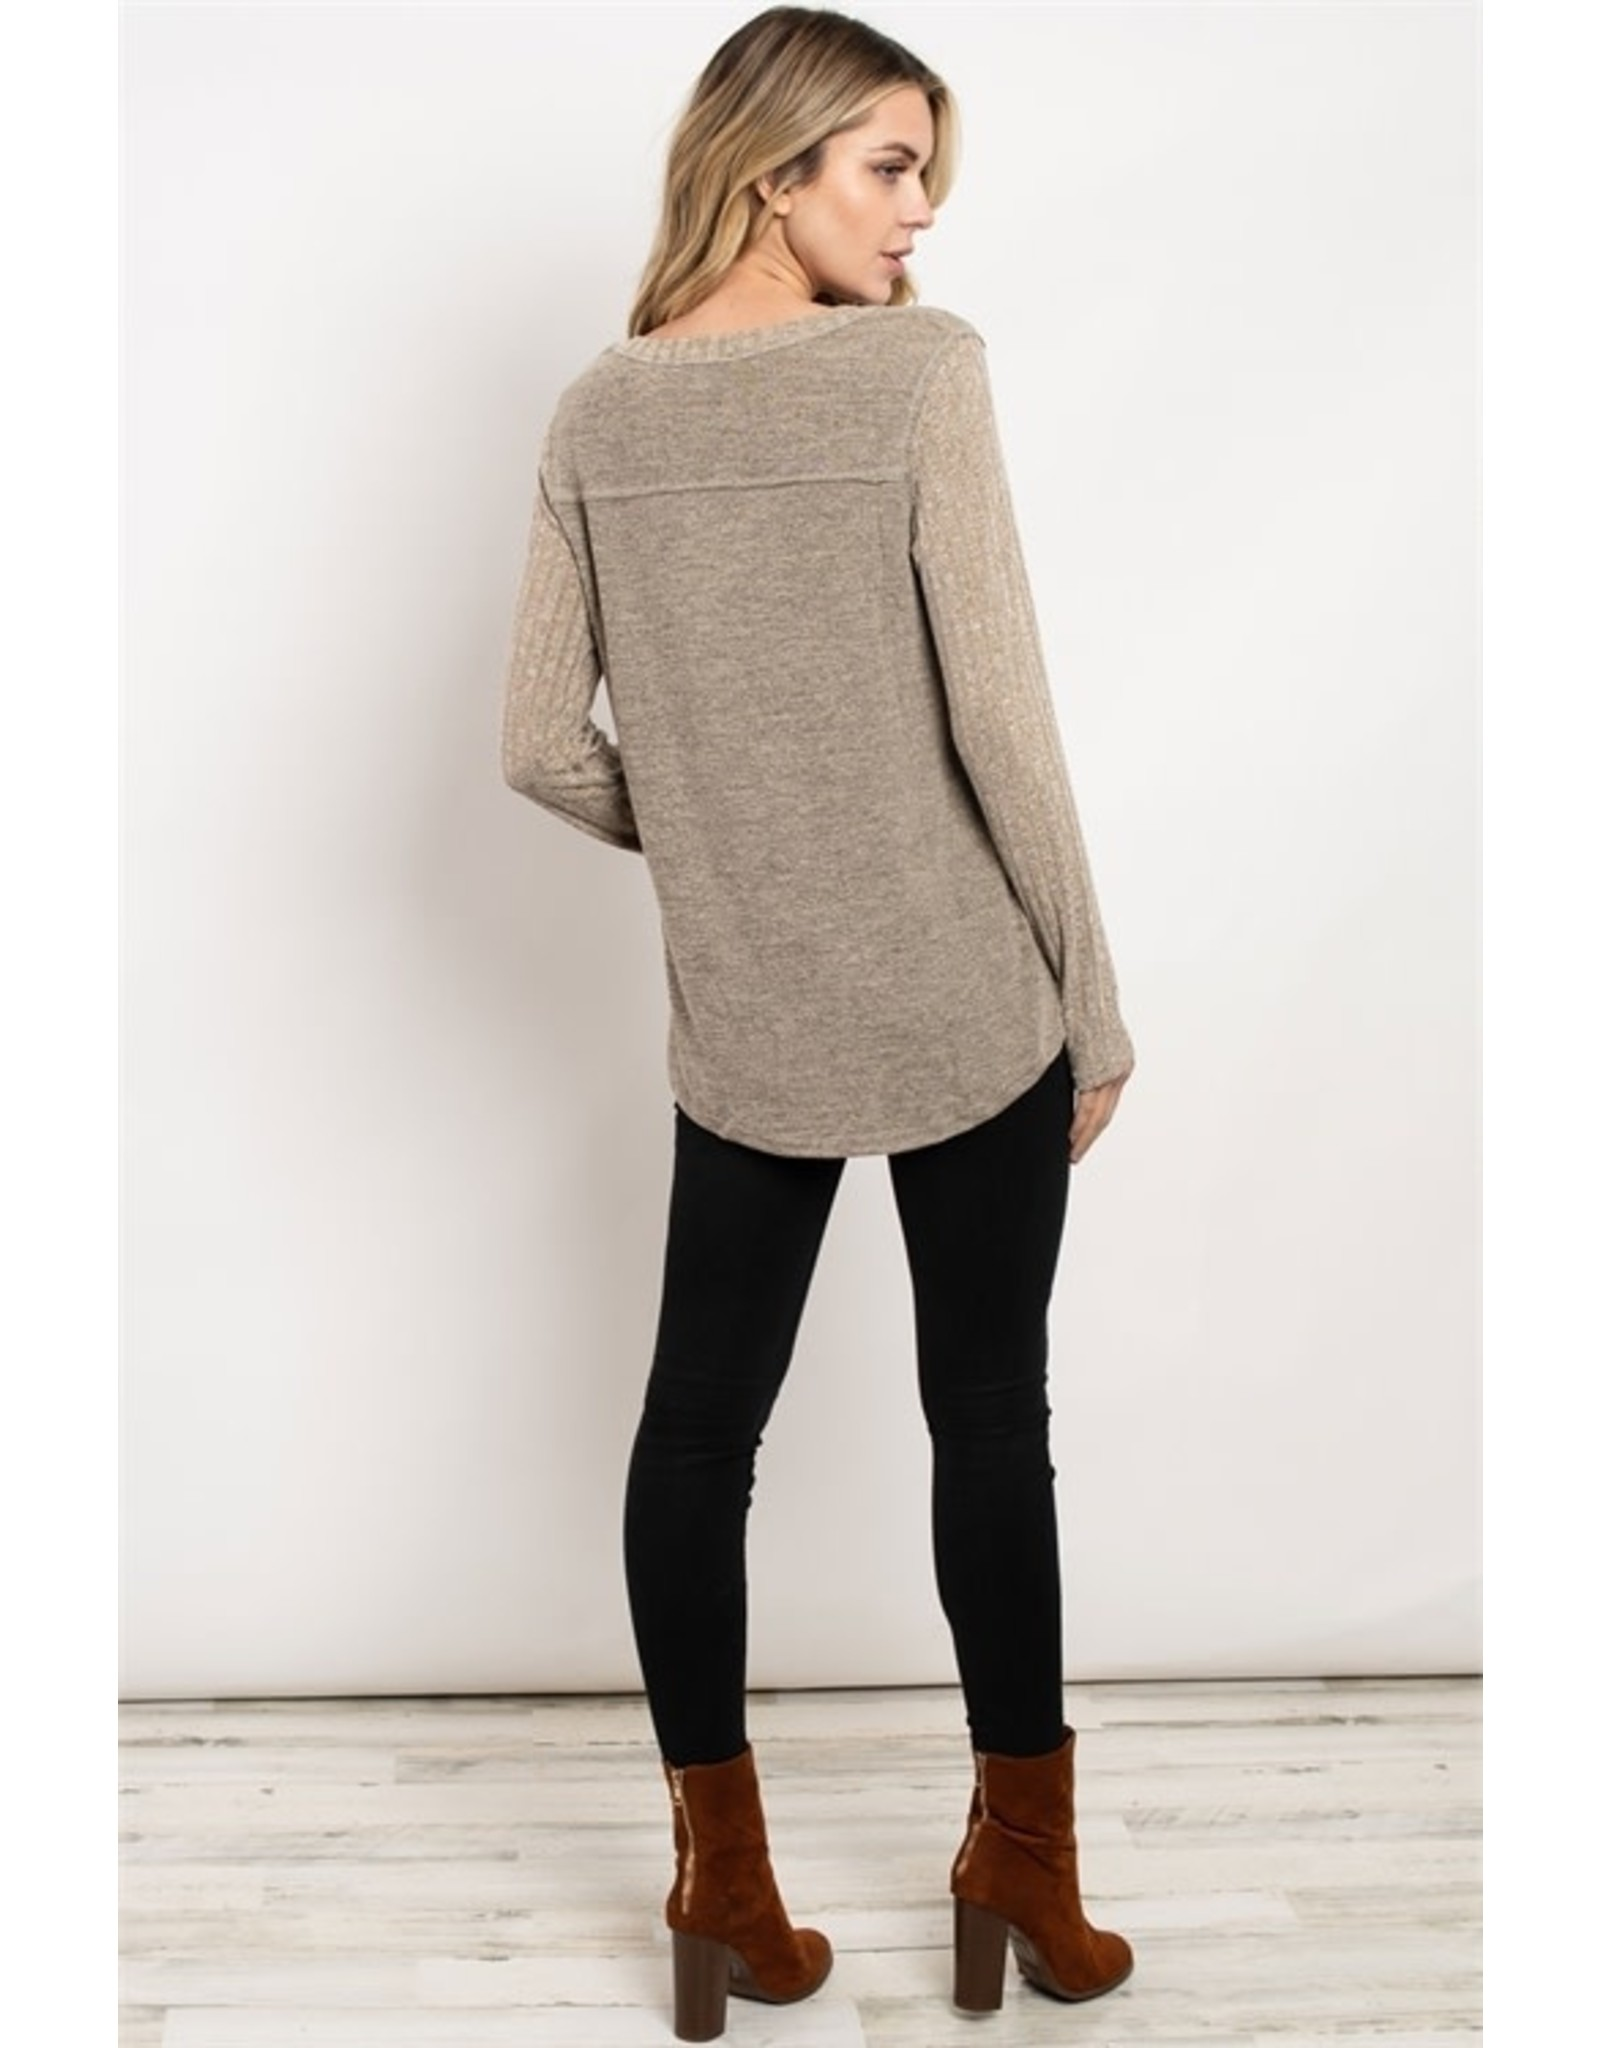 Ribbed sleeve scoop neck two-tone tunic top